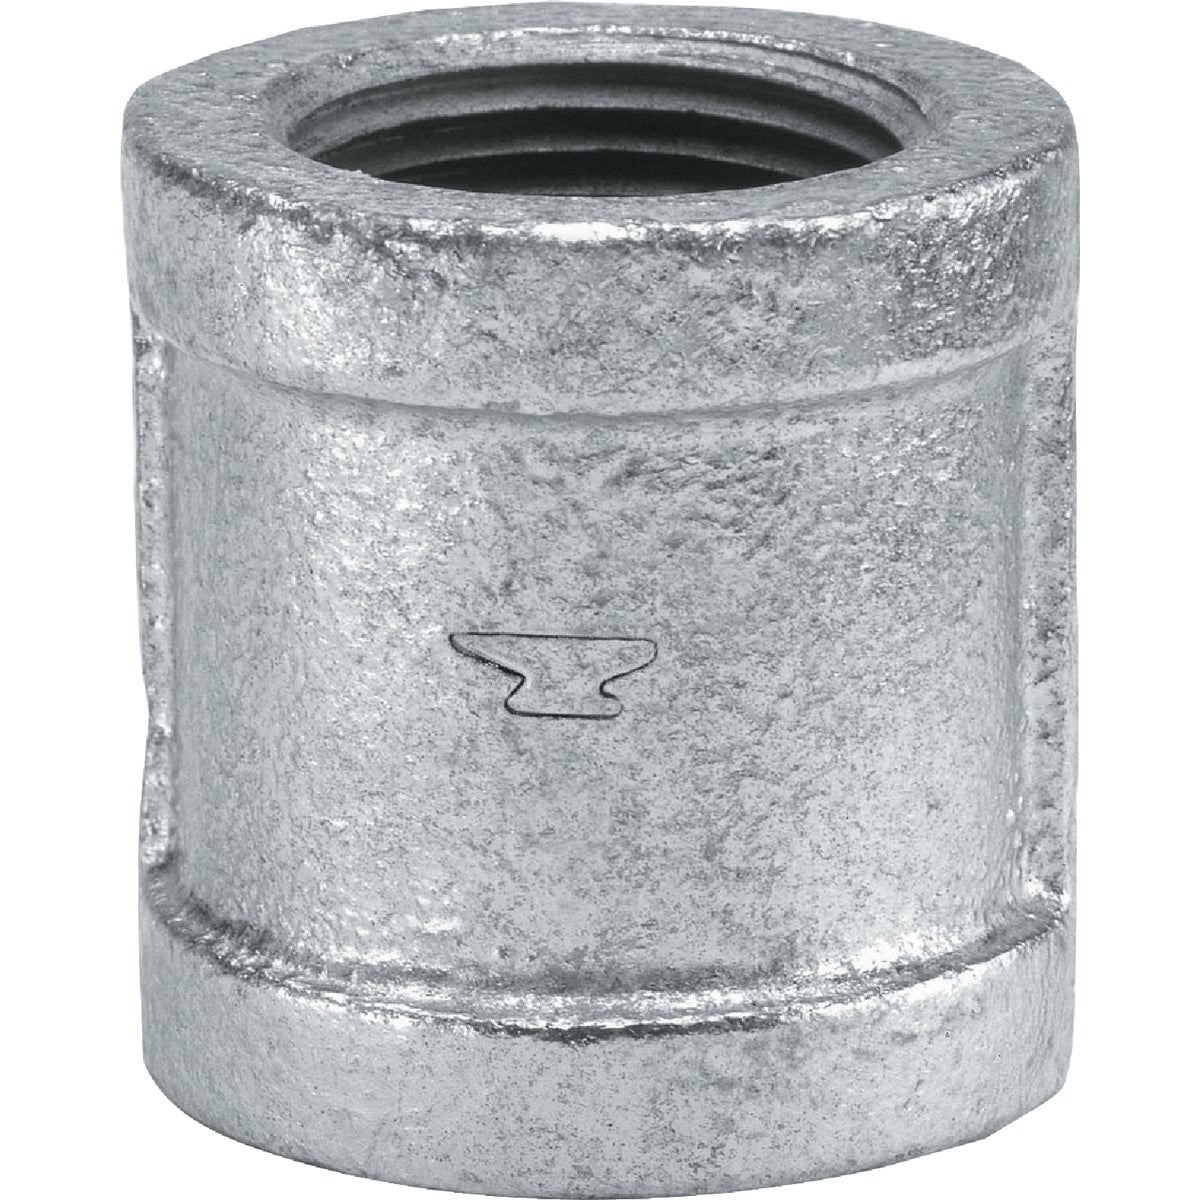 "3/8"" GALV COUPLING - 8700133500 by Anvil International"